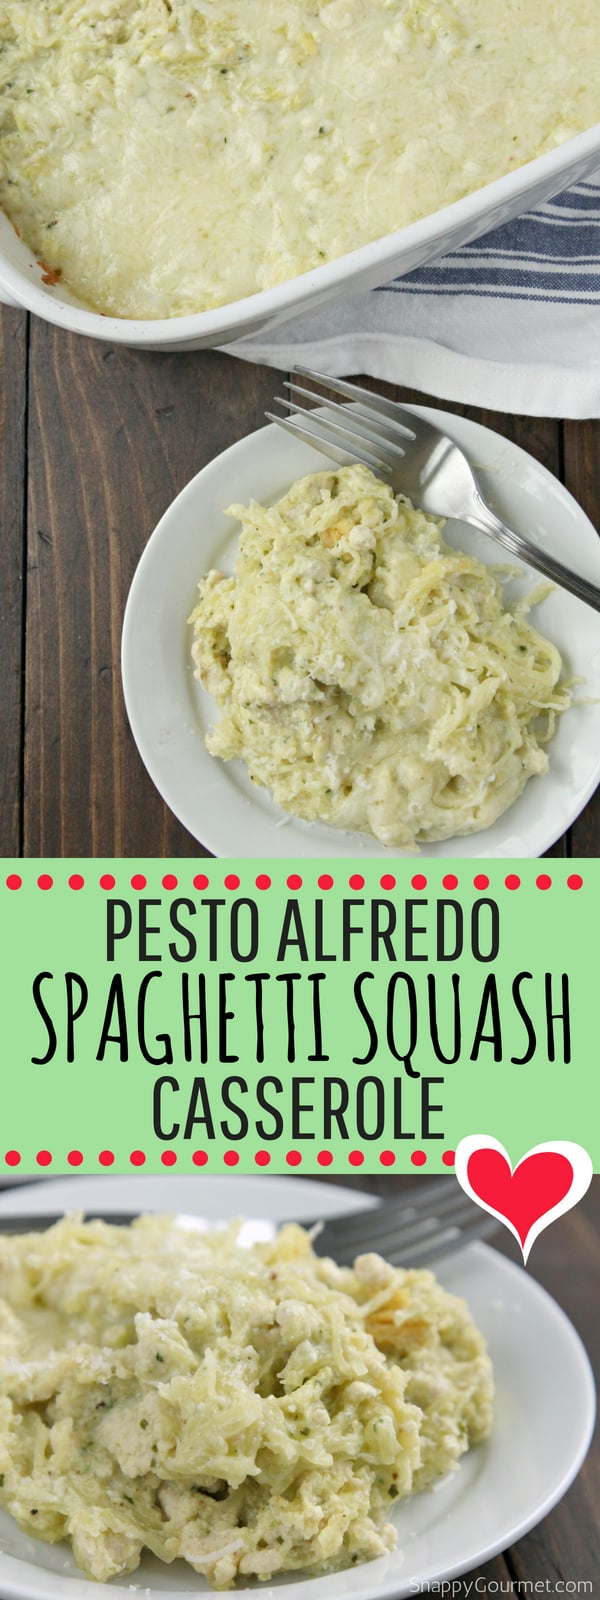 Pesto Alfredo Spaghetti Squash Casserole recipe, a baked spaghetti squash casserole full of flavor! This low carb dinner is a great alternative to pasta and loaded with basil pesto, alfredo sauce, cheese, and spaghetti squash. Even the kids will enjoy! #SpaghettiSquash #Recipe #Casserole #SnappyGourmet #Dinner #Italian #Homemade #Alfredo #Pesto #LowCarb #Chicken